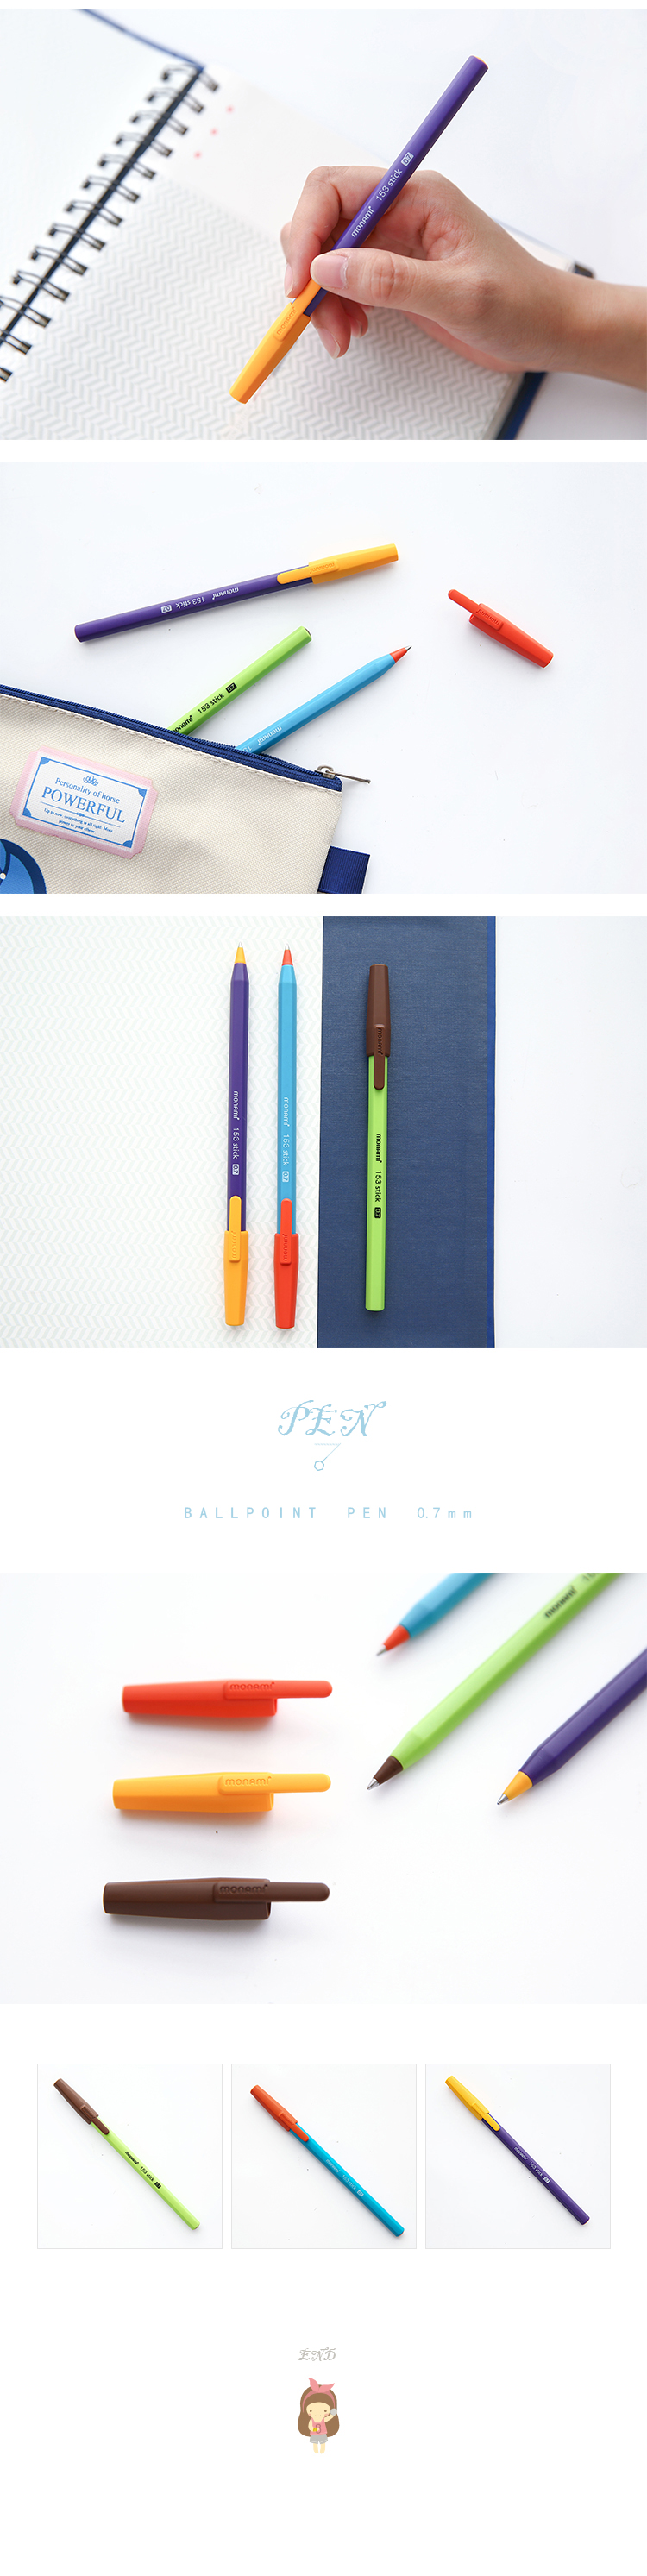 1 Pcs Cute Kawaii Hit Color Writing Roller Accessories Gift Ballpoint Pen Office School Supplies Stationery Kids Student Child